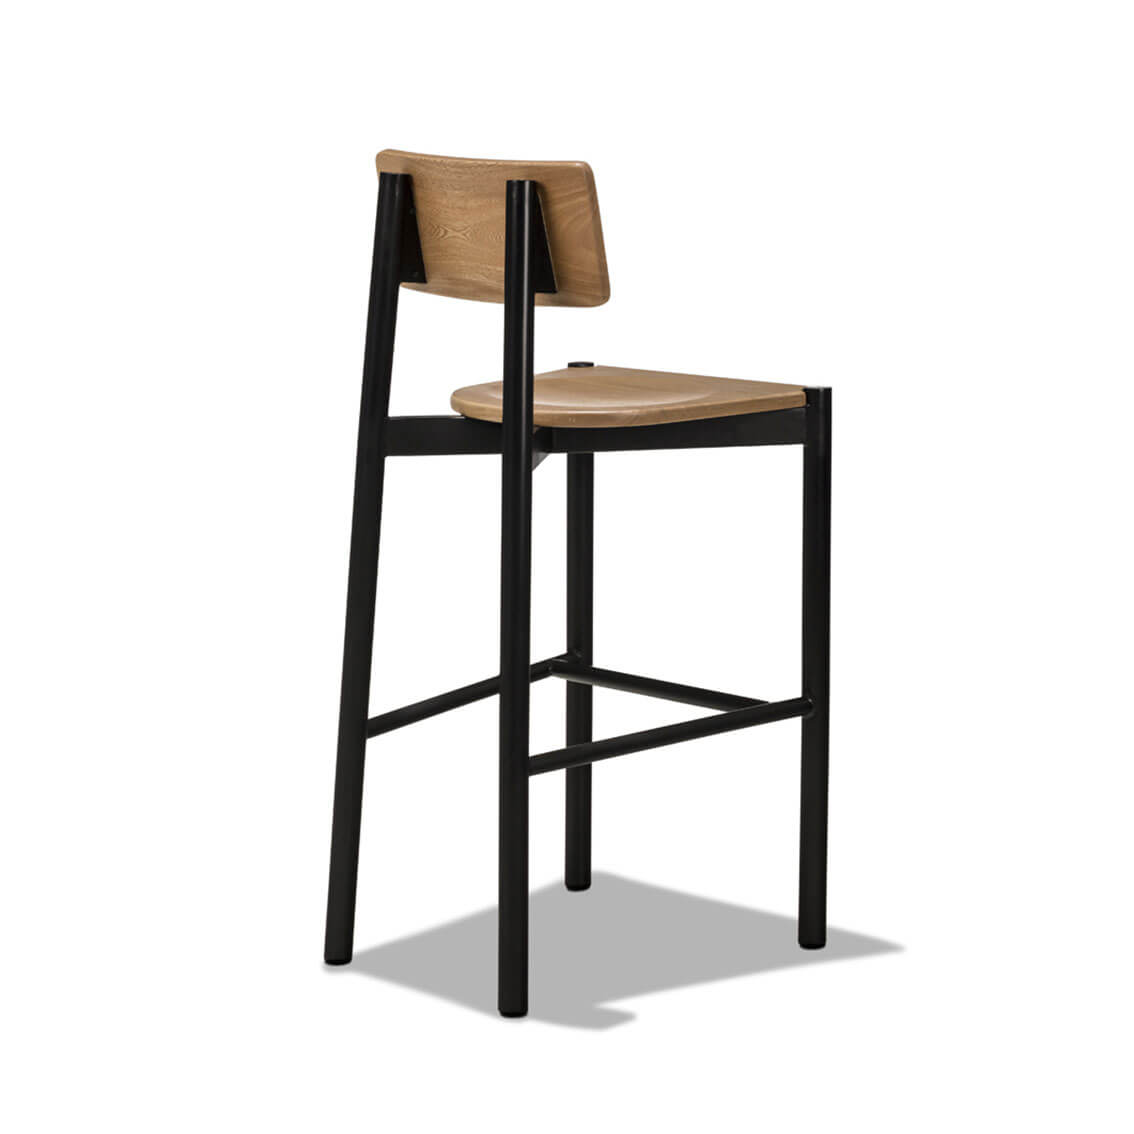 Irene Bar Chair